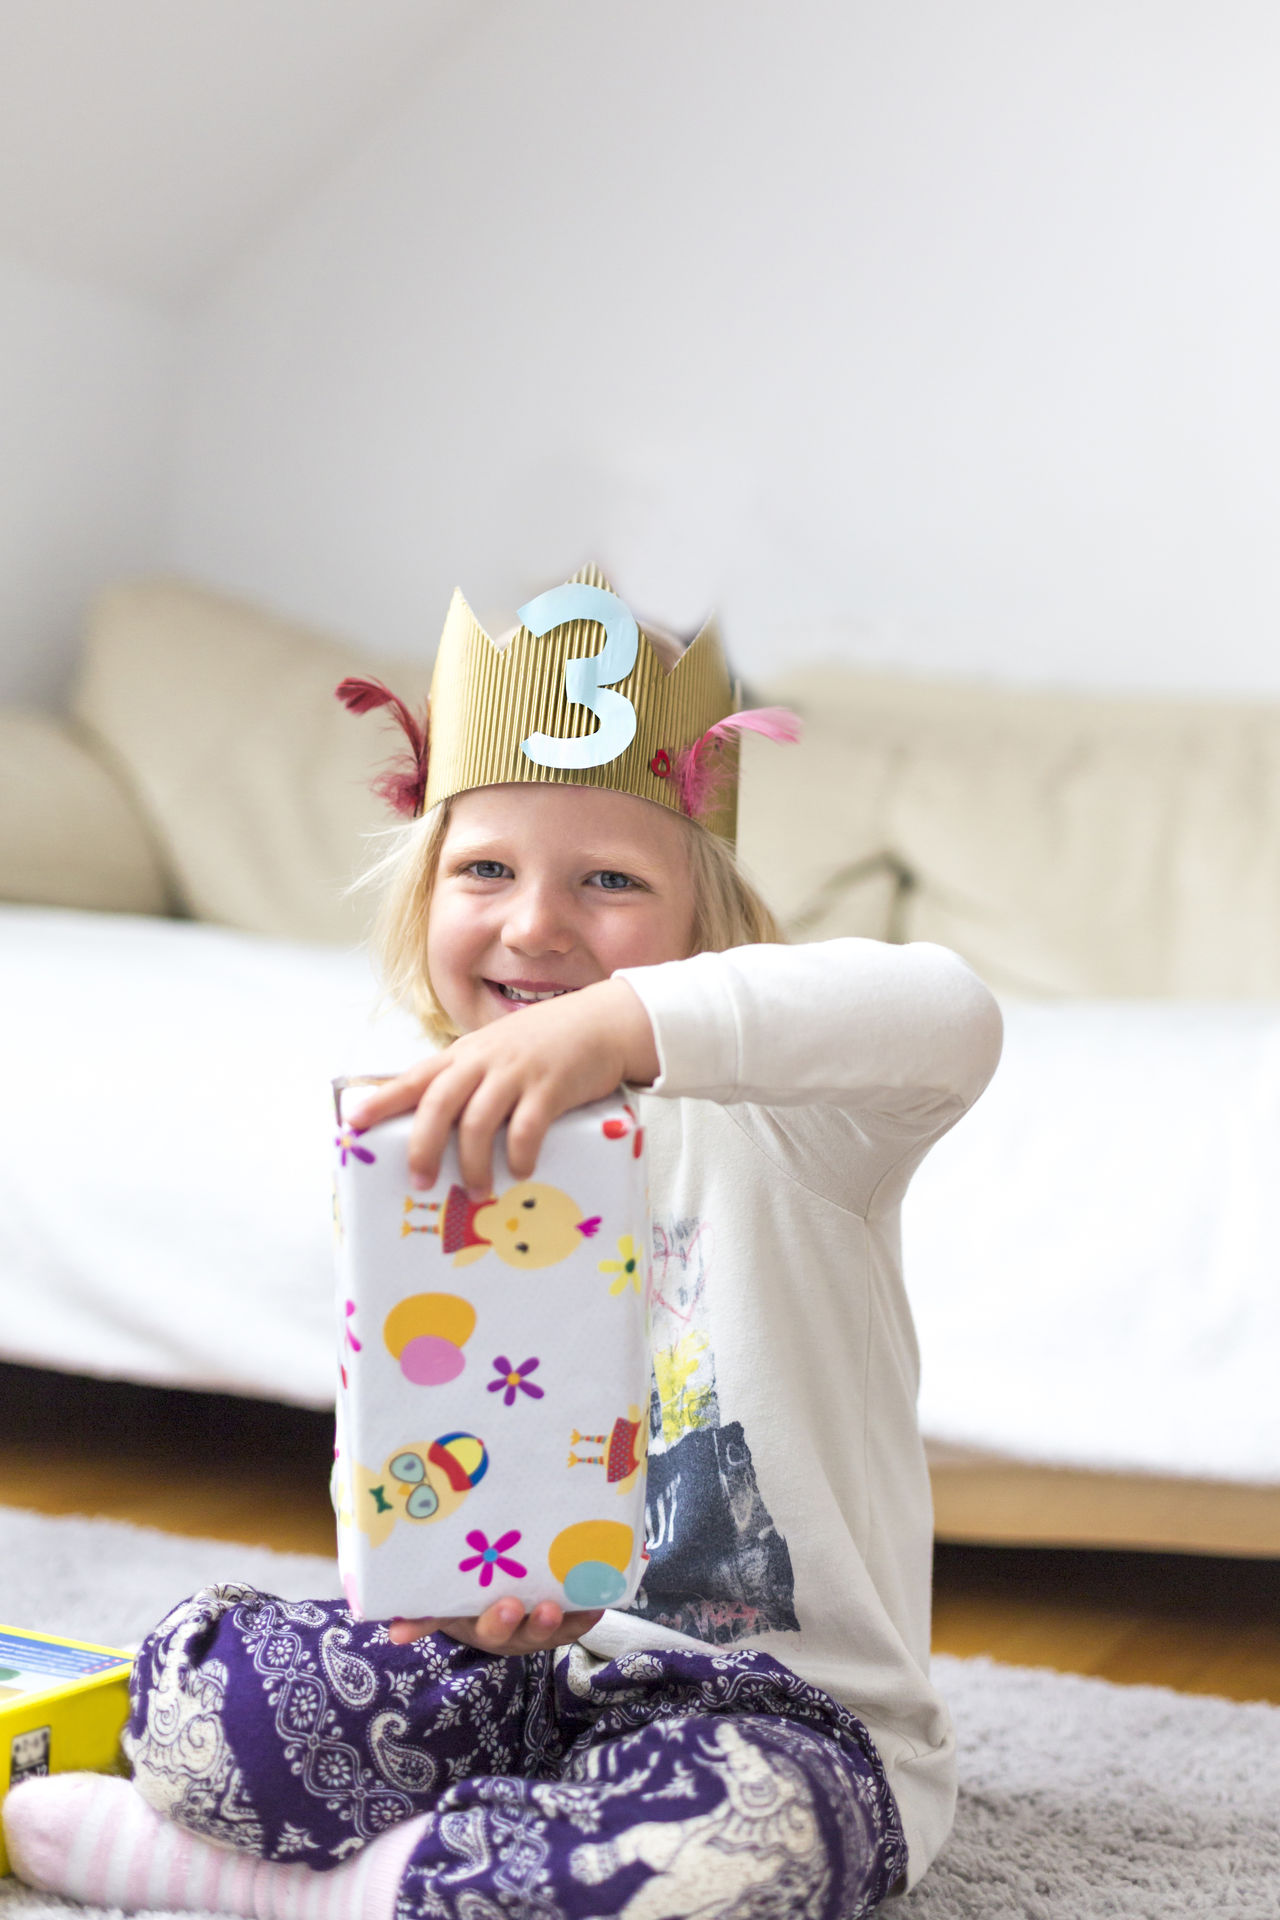 Portrait of adorable child with crown and birthday presents 3 4 Adorable At Home Birthday Birthday Party Blonde Celebrating Childhood Crown Girl Happiness Happy Joy Lifestyles Playing Presents Princess Queen Selfmade Sitting Smiling Sofa Toddler  Unboxing